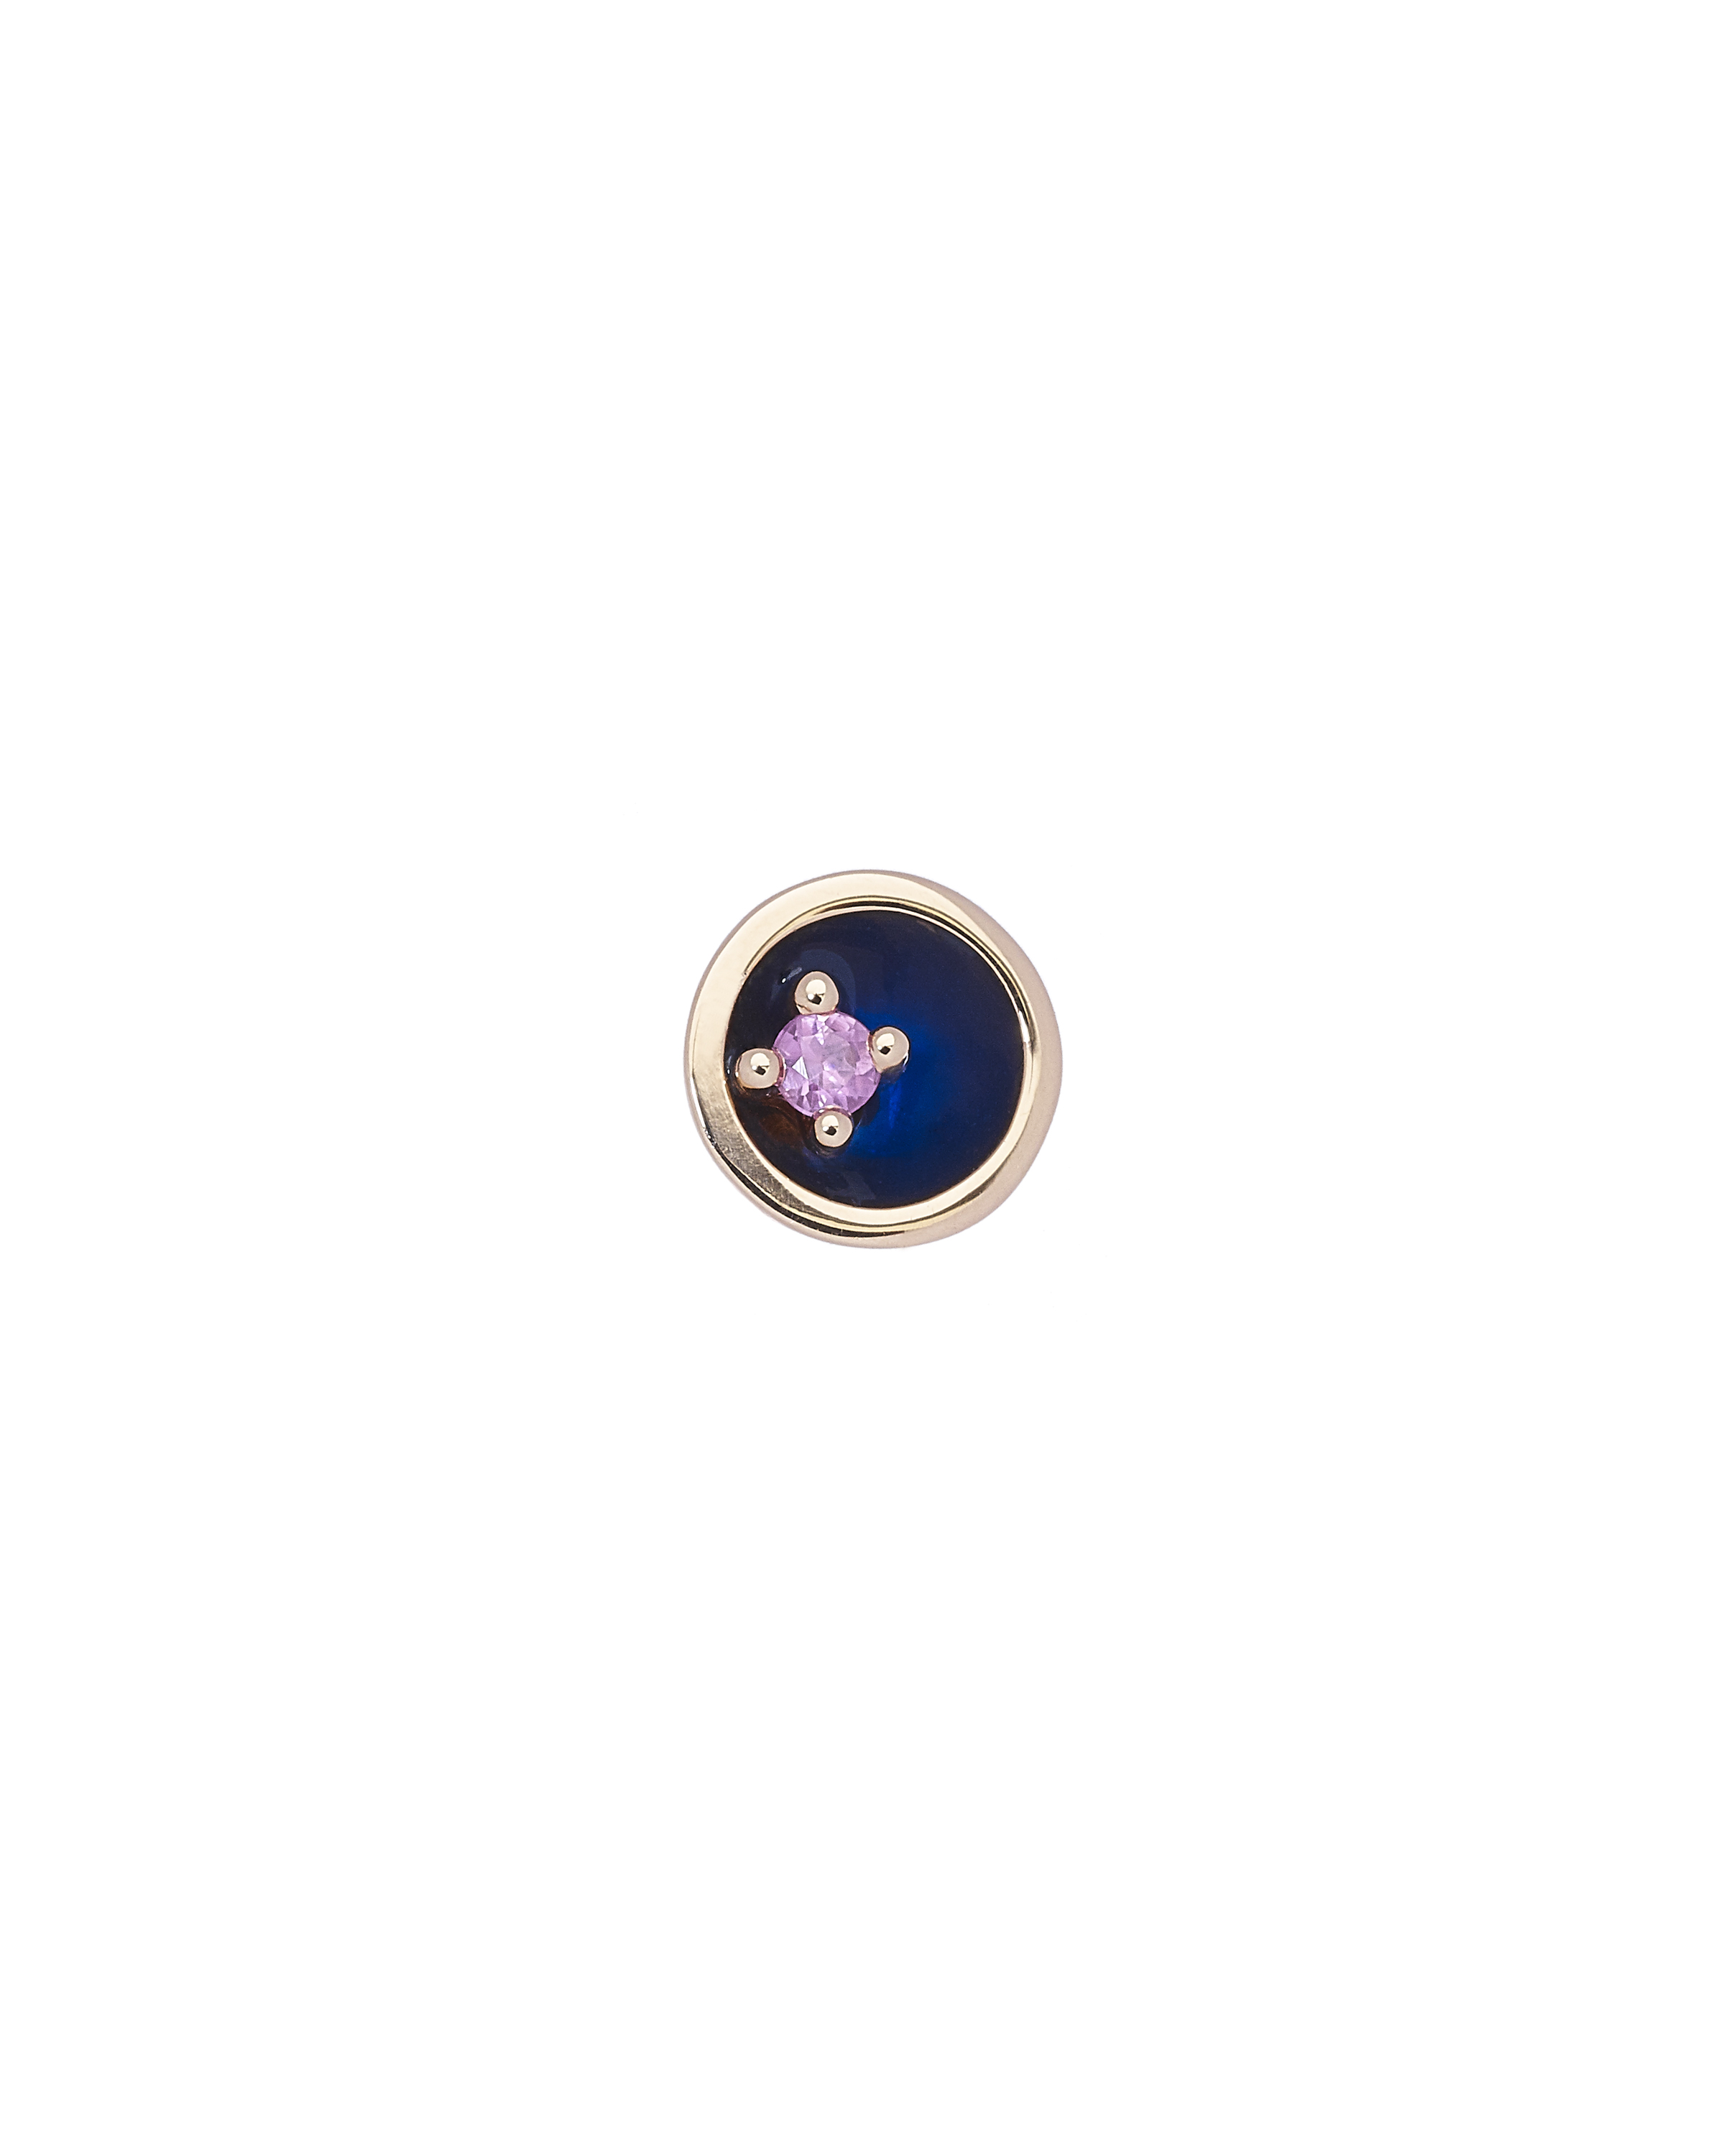 Small Floating Star Pink Sapphire Earring by Marmari on curated-crowd.com